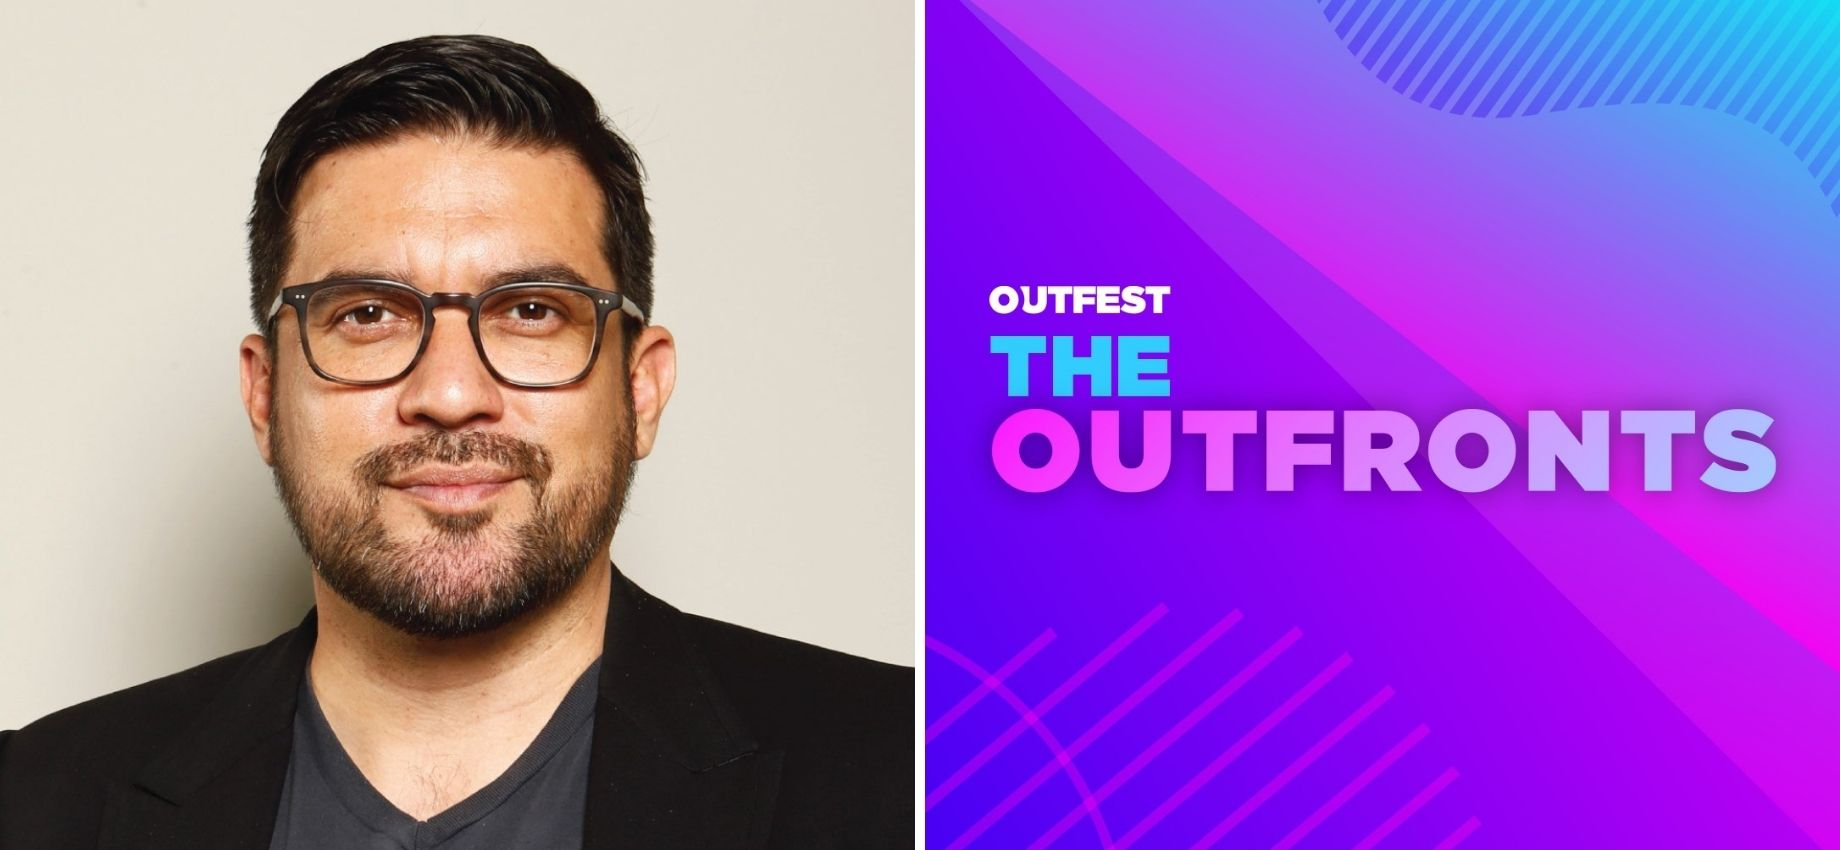 EXCLUSIVE: Outfest's Executive Director Damien S. Navarro Talks OutFronts Fan Event and LGBTQ+ Media